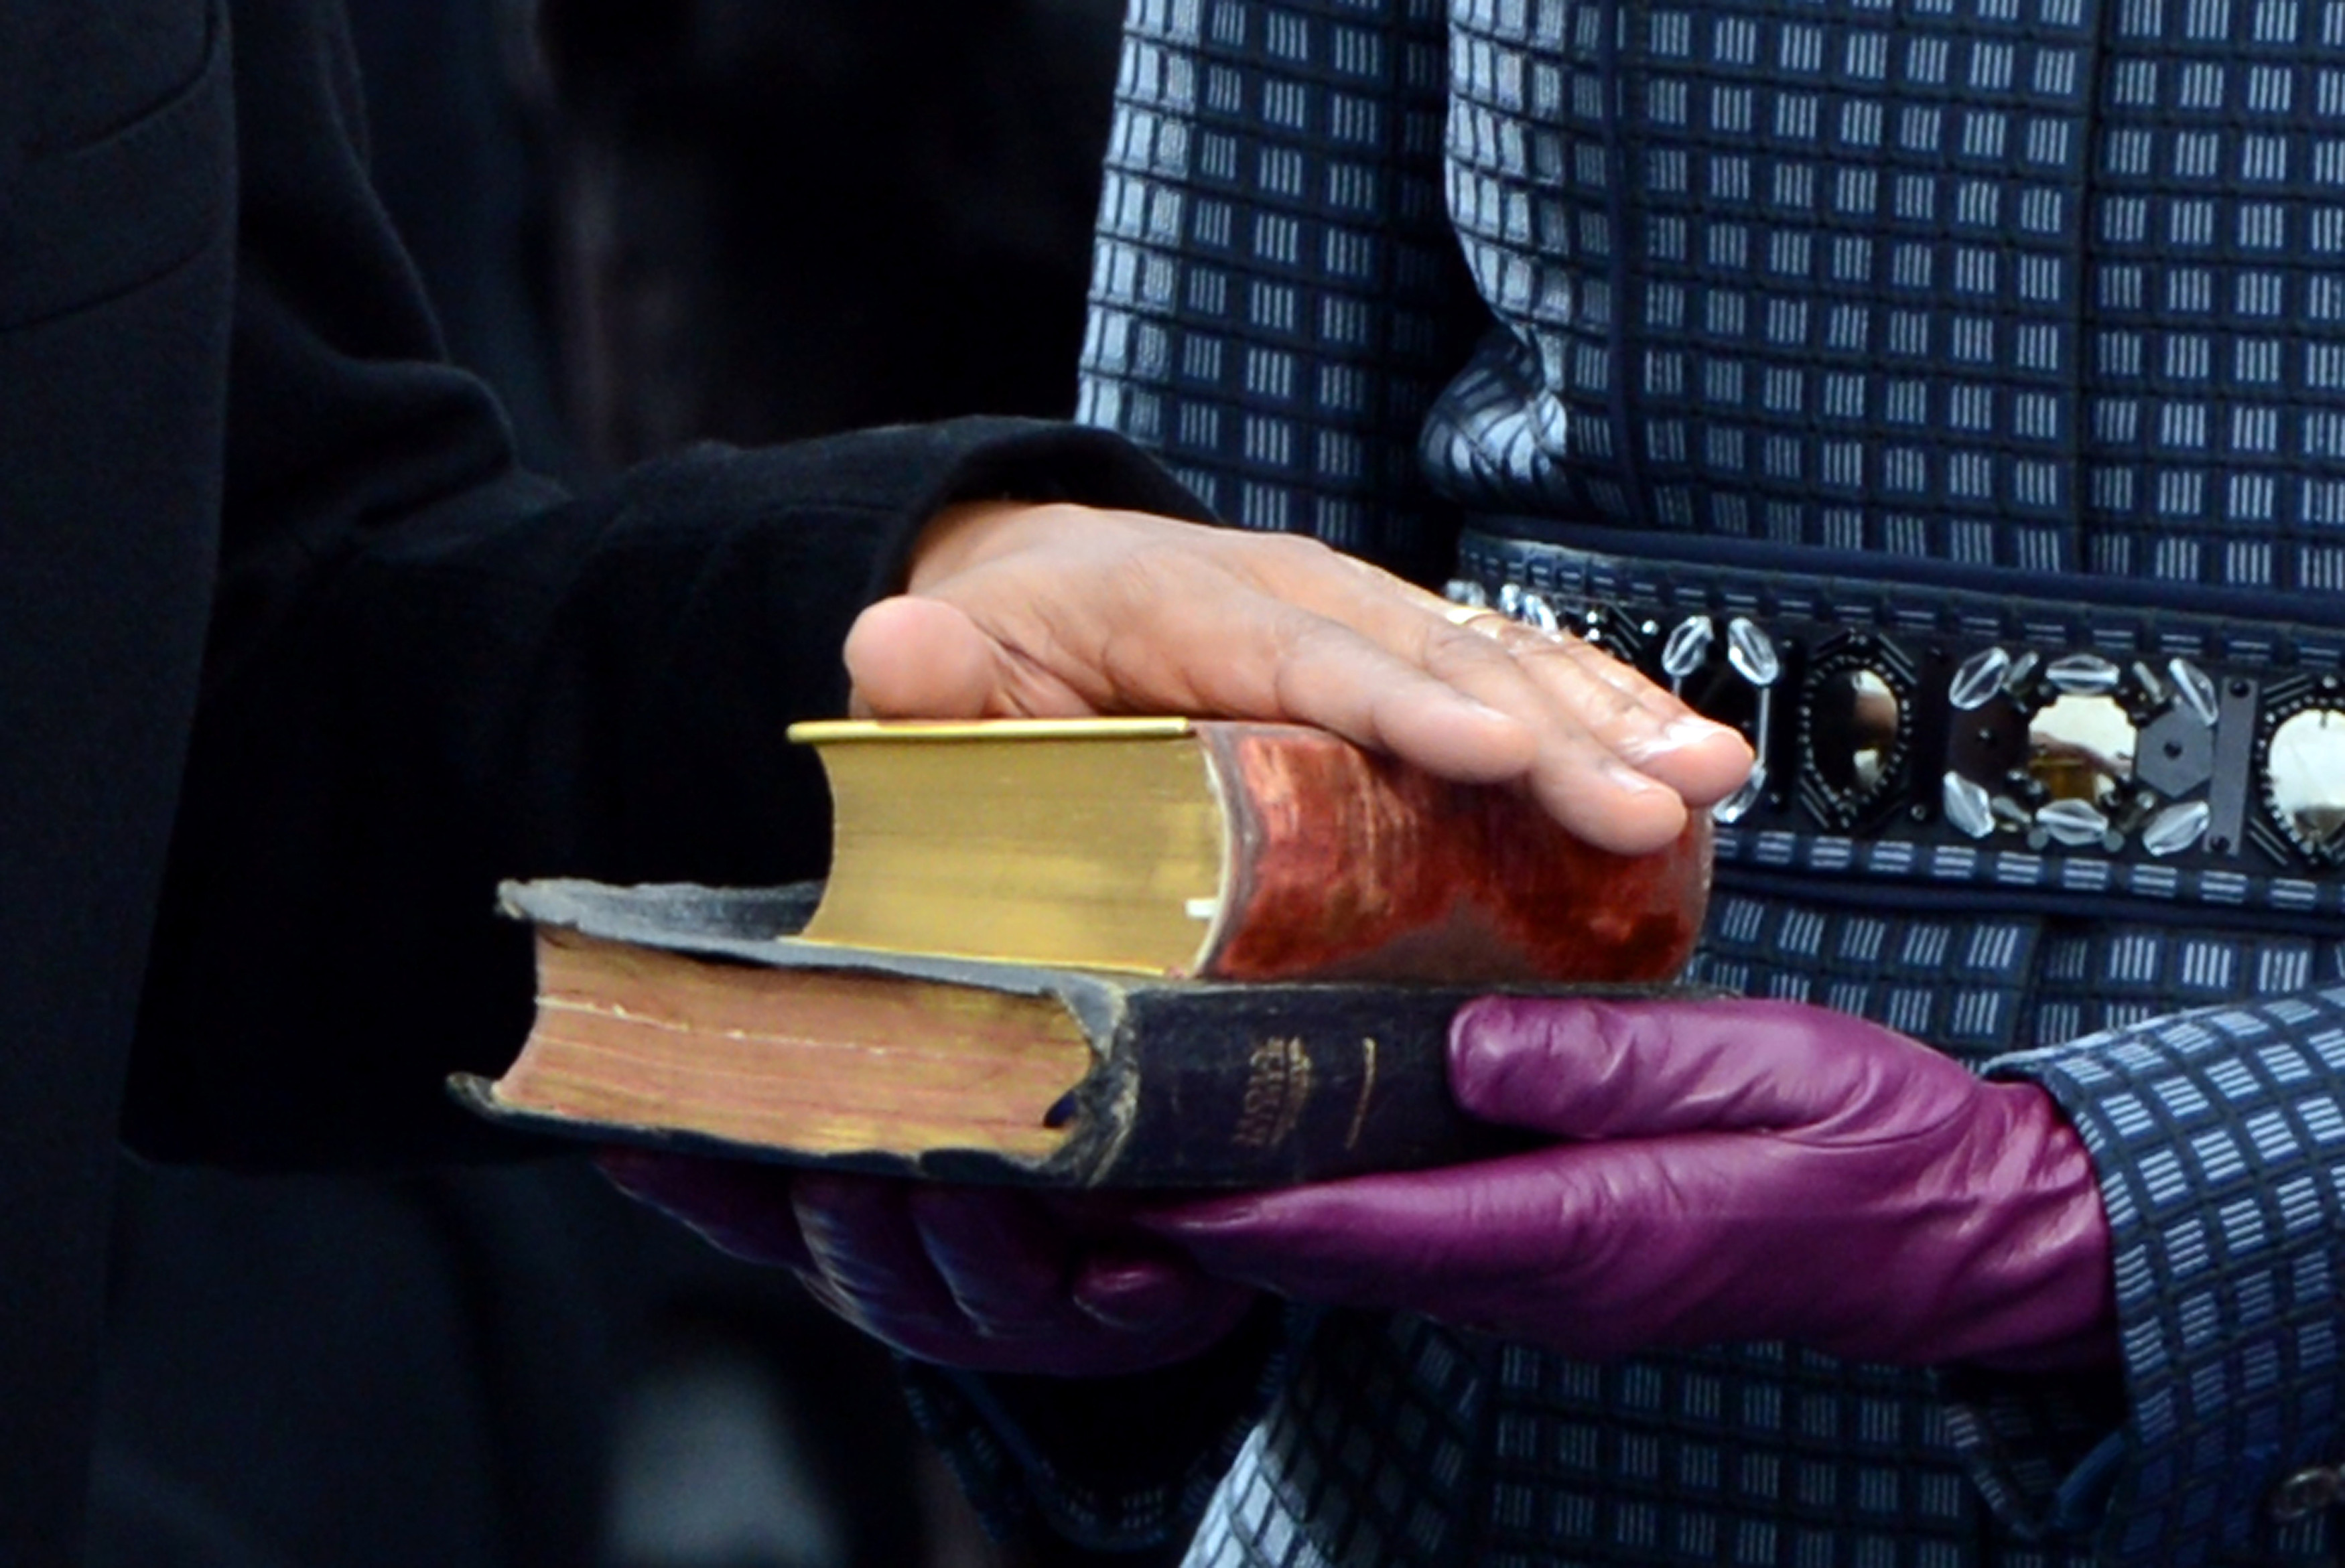 U.S. President Barack Obama puts his hand on the Bible held by First Lady Michelle Obama as he is sworn-in for a second term by Supreme Court Chief Justice John Roberts during his public inauguration ceremony at the U.S. Capitol Building in Washington, D.C. on January 21, 2013. President Obama was joined by First Lady Michelle Obama and daughters Sasha and Malia. UPI/Kevin Dietsch